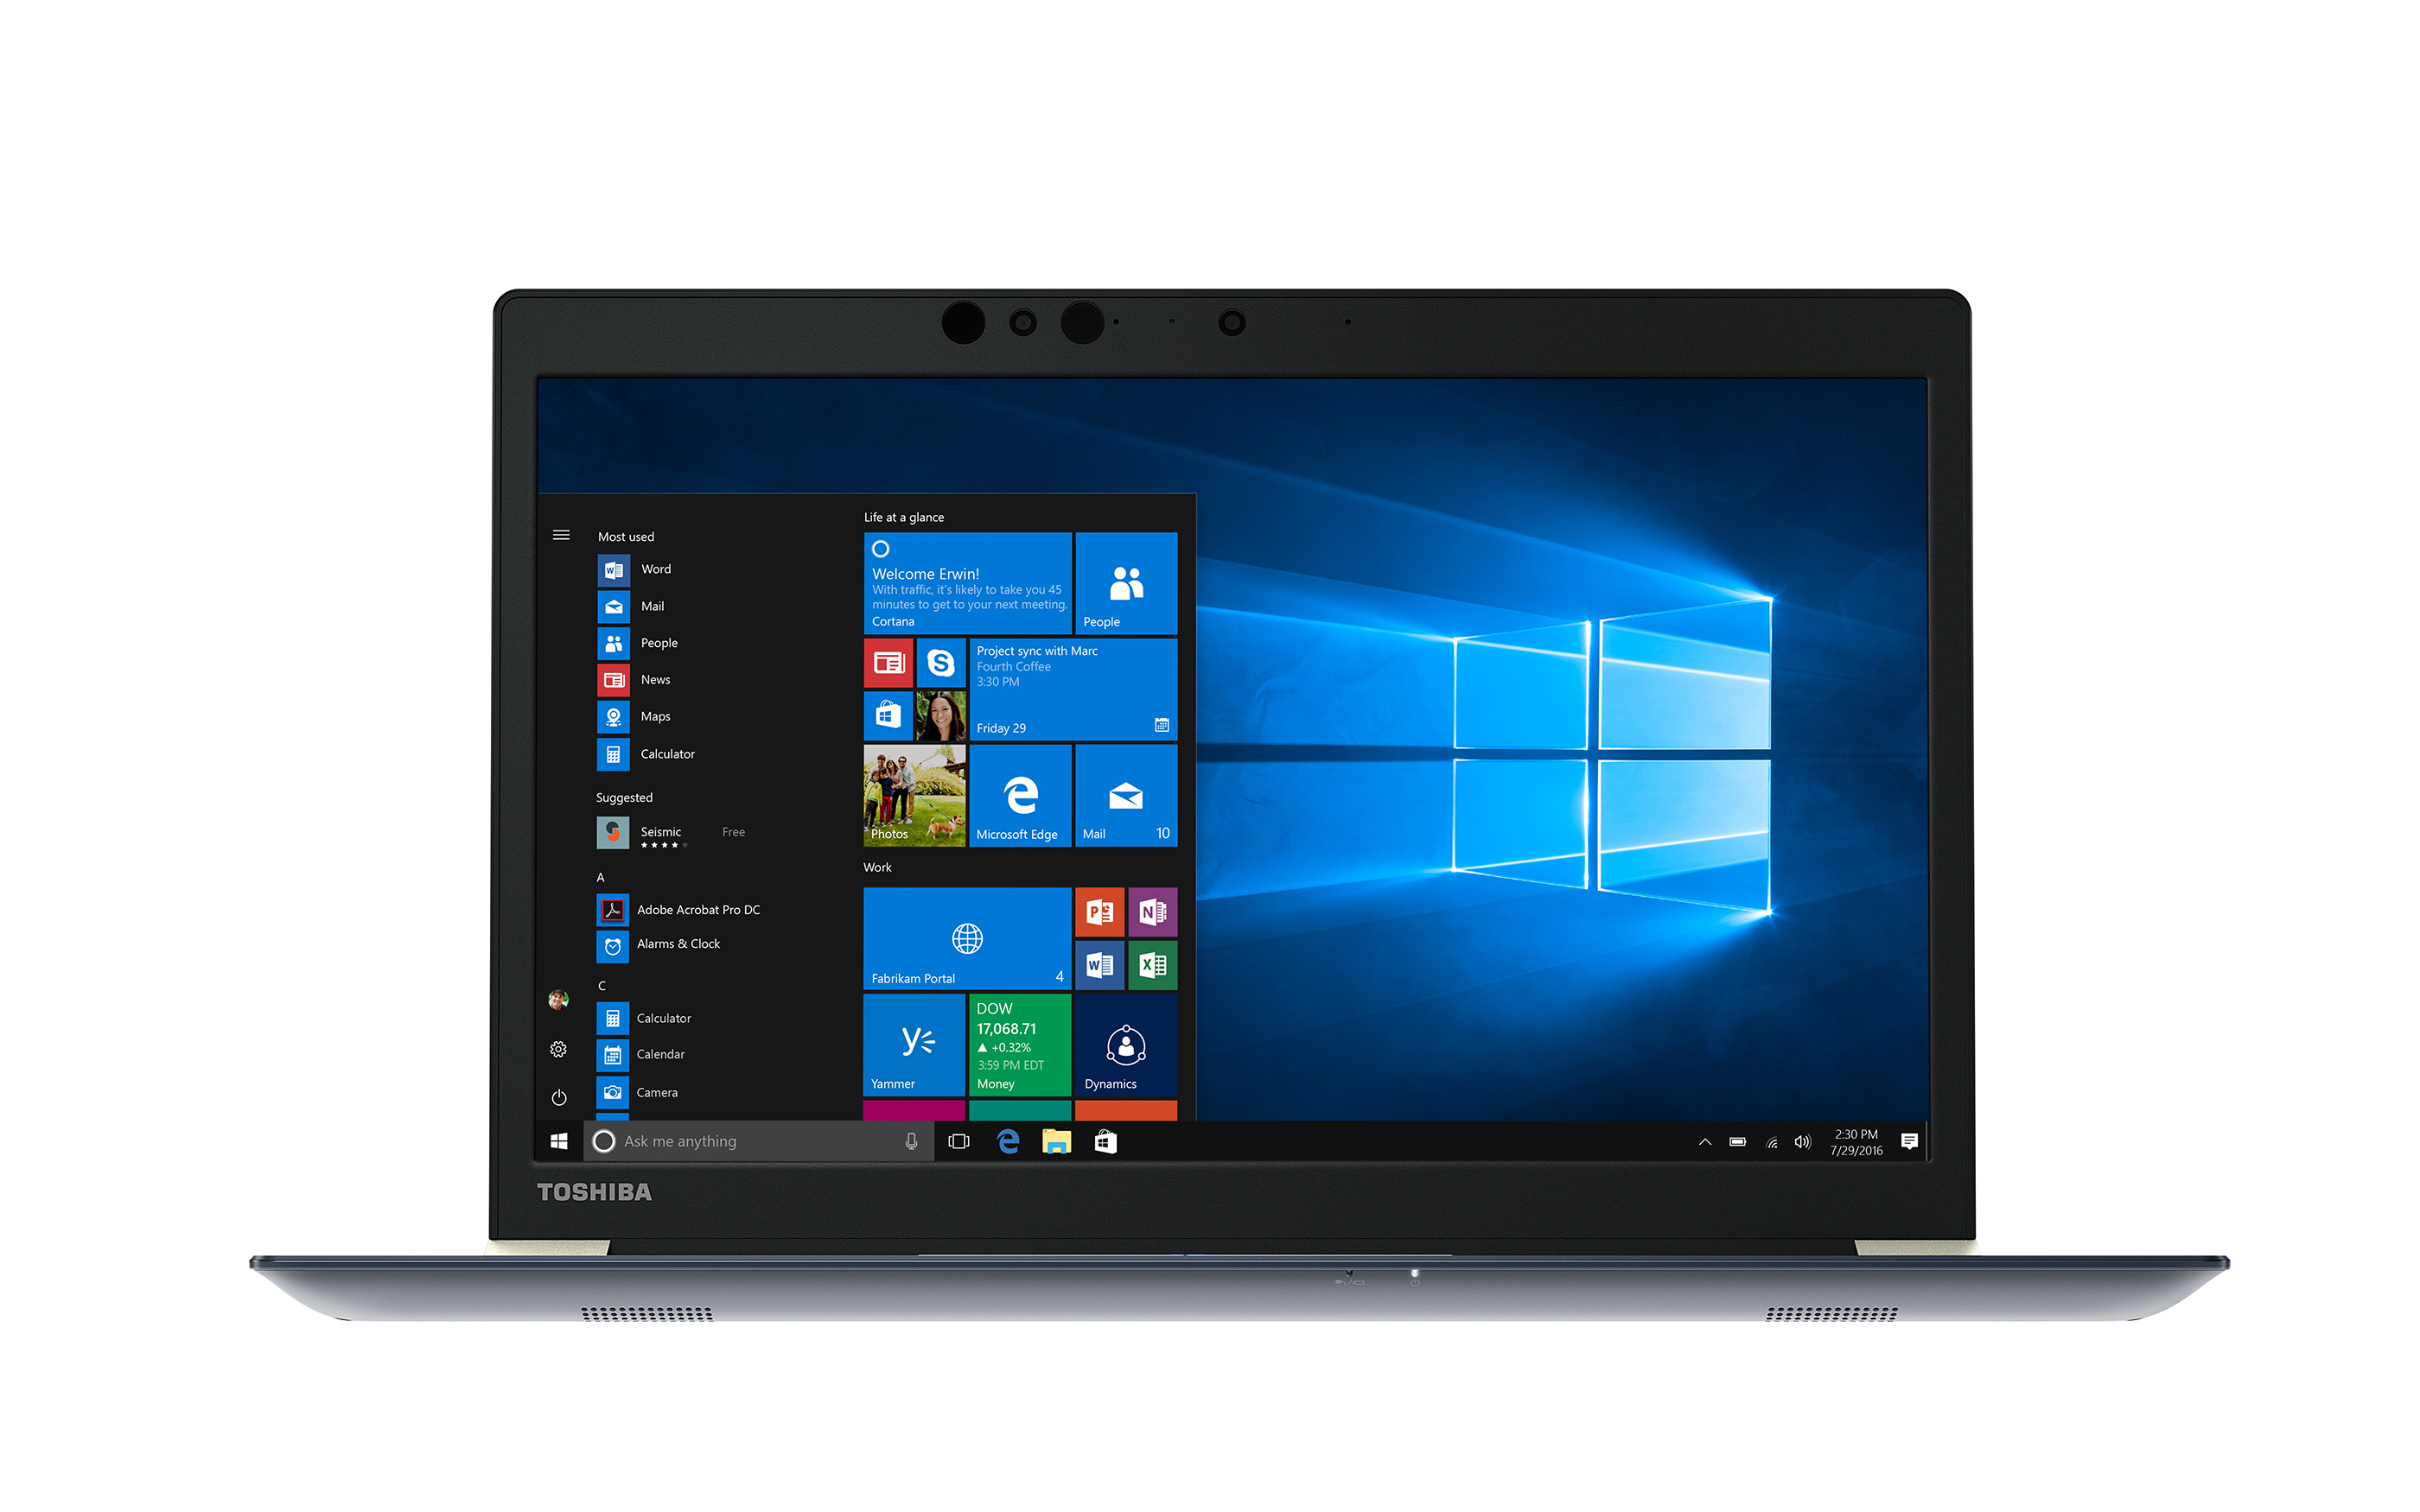 The Tecra X40 delivers Full HD (1920 x 1080) multi-touch wide viewing angle displays, Intel® 802.11ac Wi-Fi®, solid state drives and batteries with extended life ratings of up to 13 hours. (Photo: Business Wire)